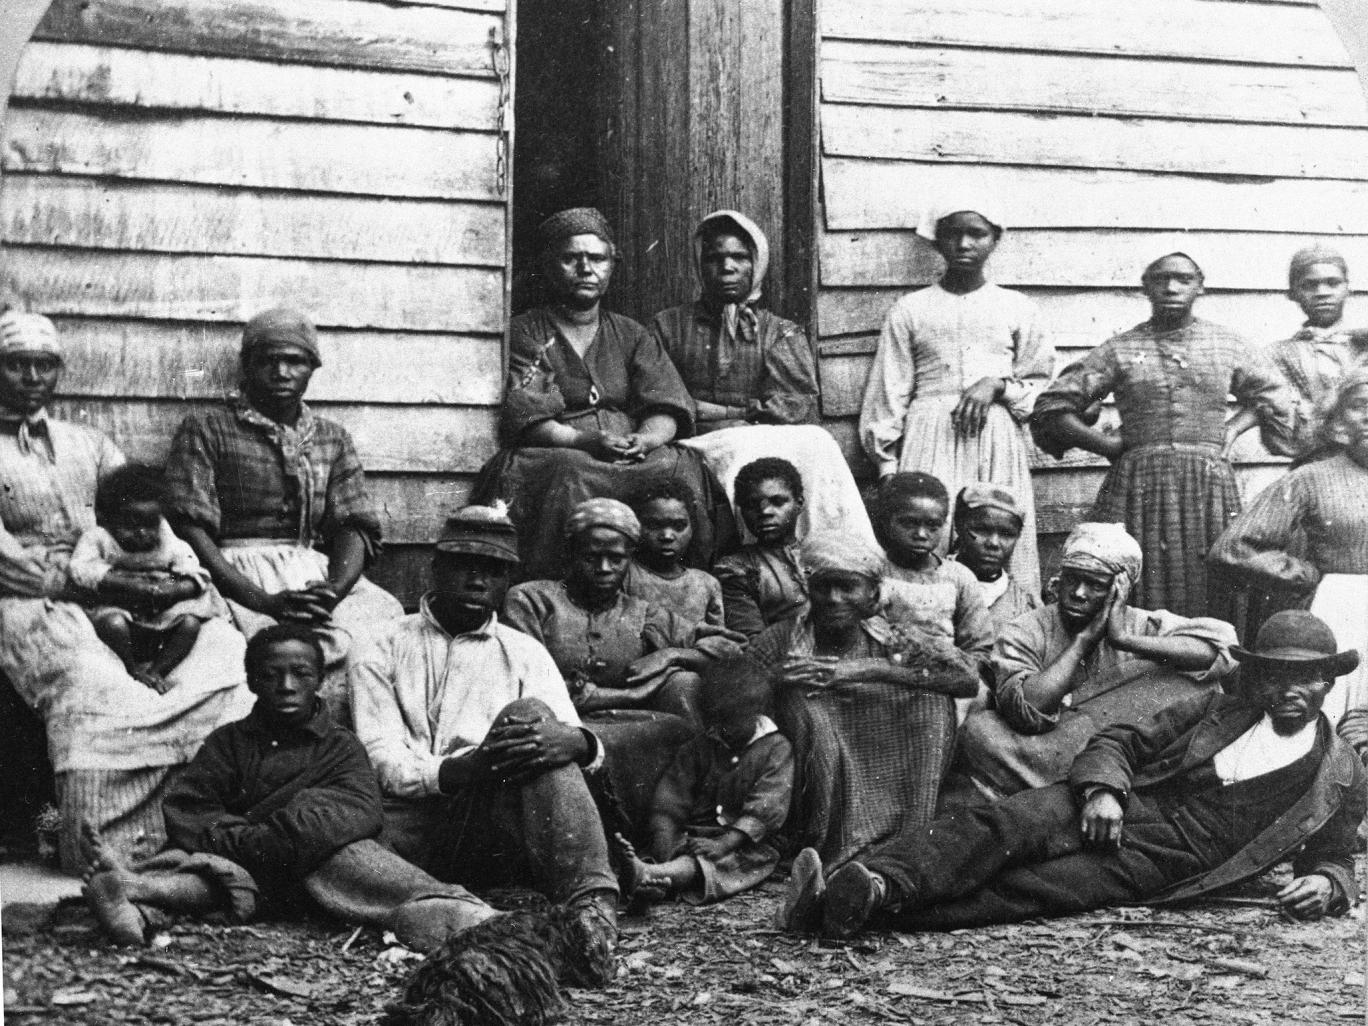 slavery predates race Slavery webquest introduction slavery predates writing and can be found in almost all cultures and continents african american slavery however  race begin.